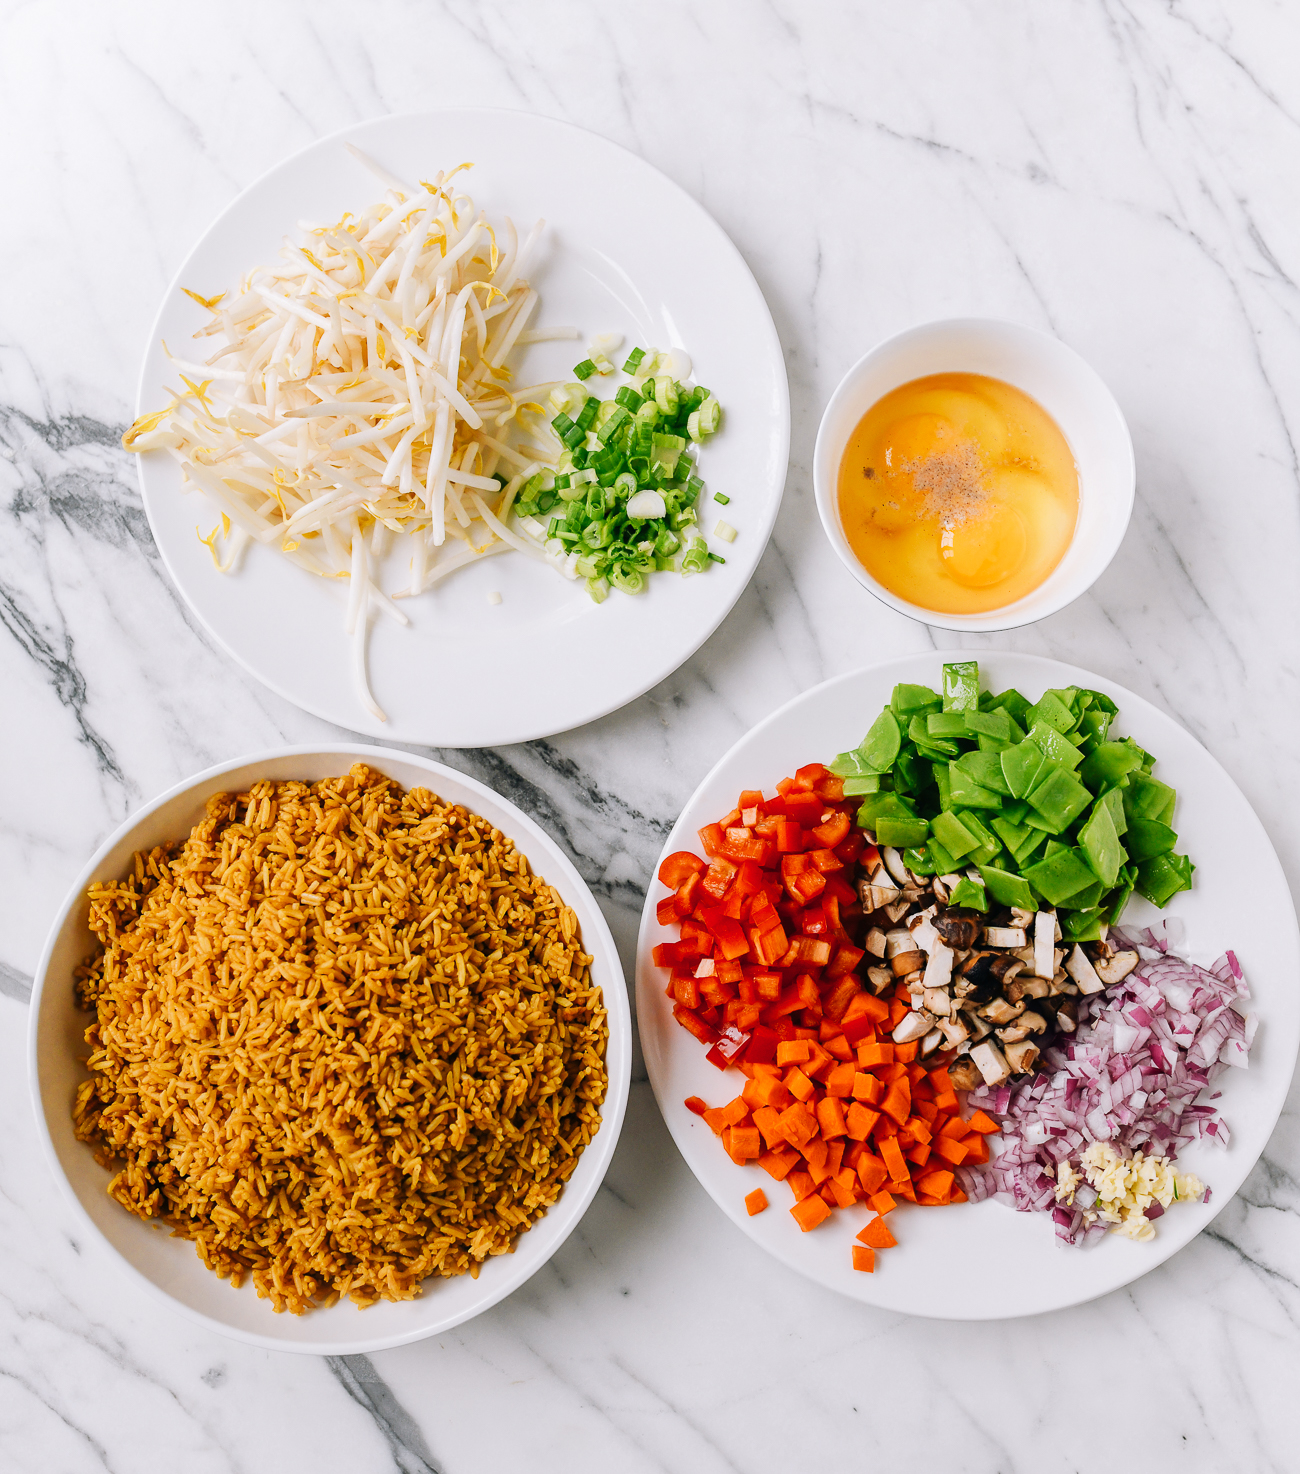 Vegetable fried rice ingredients